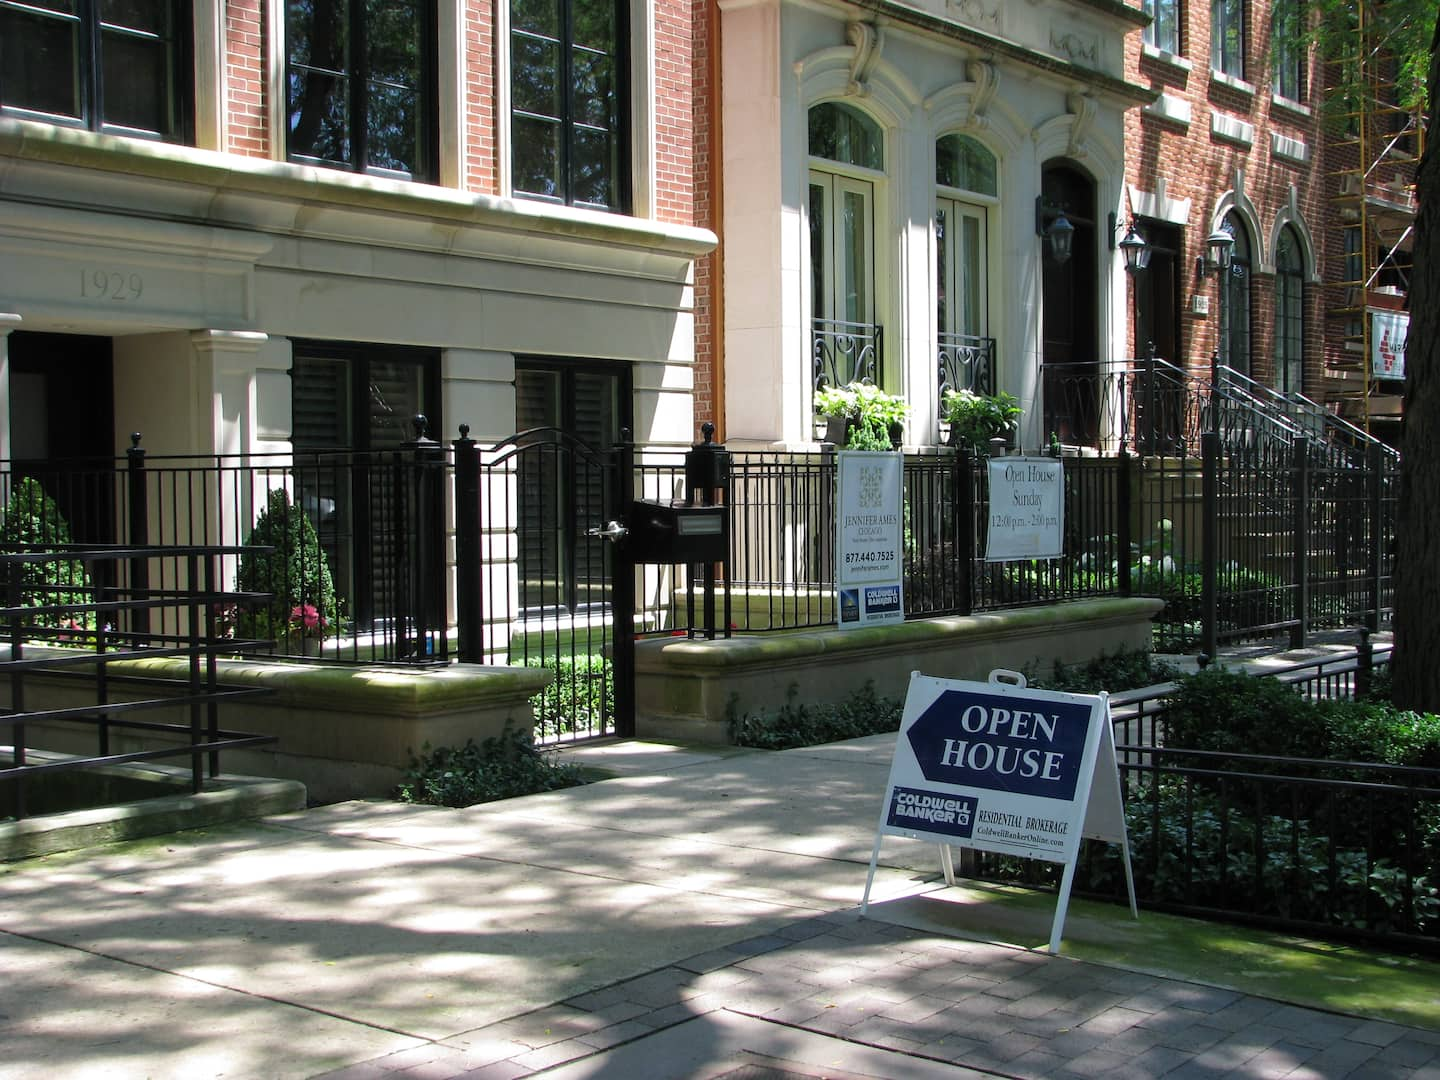 The Chicago real estate market continues to improve with the number of foreclosure filings down almost 40 percent from the first half of 2013. (Photo by Steven Jack)